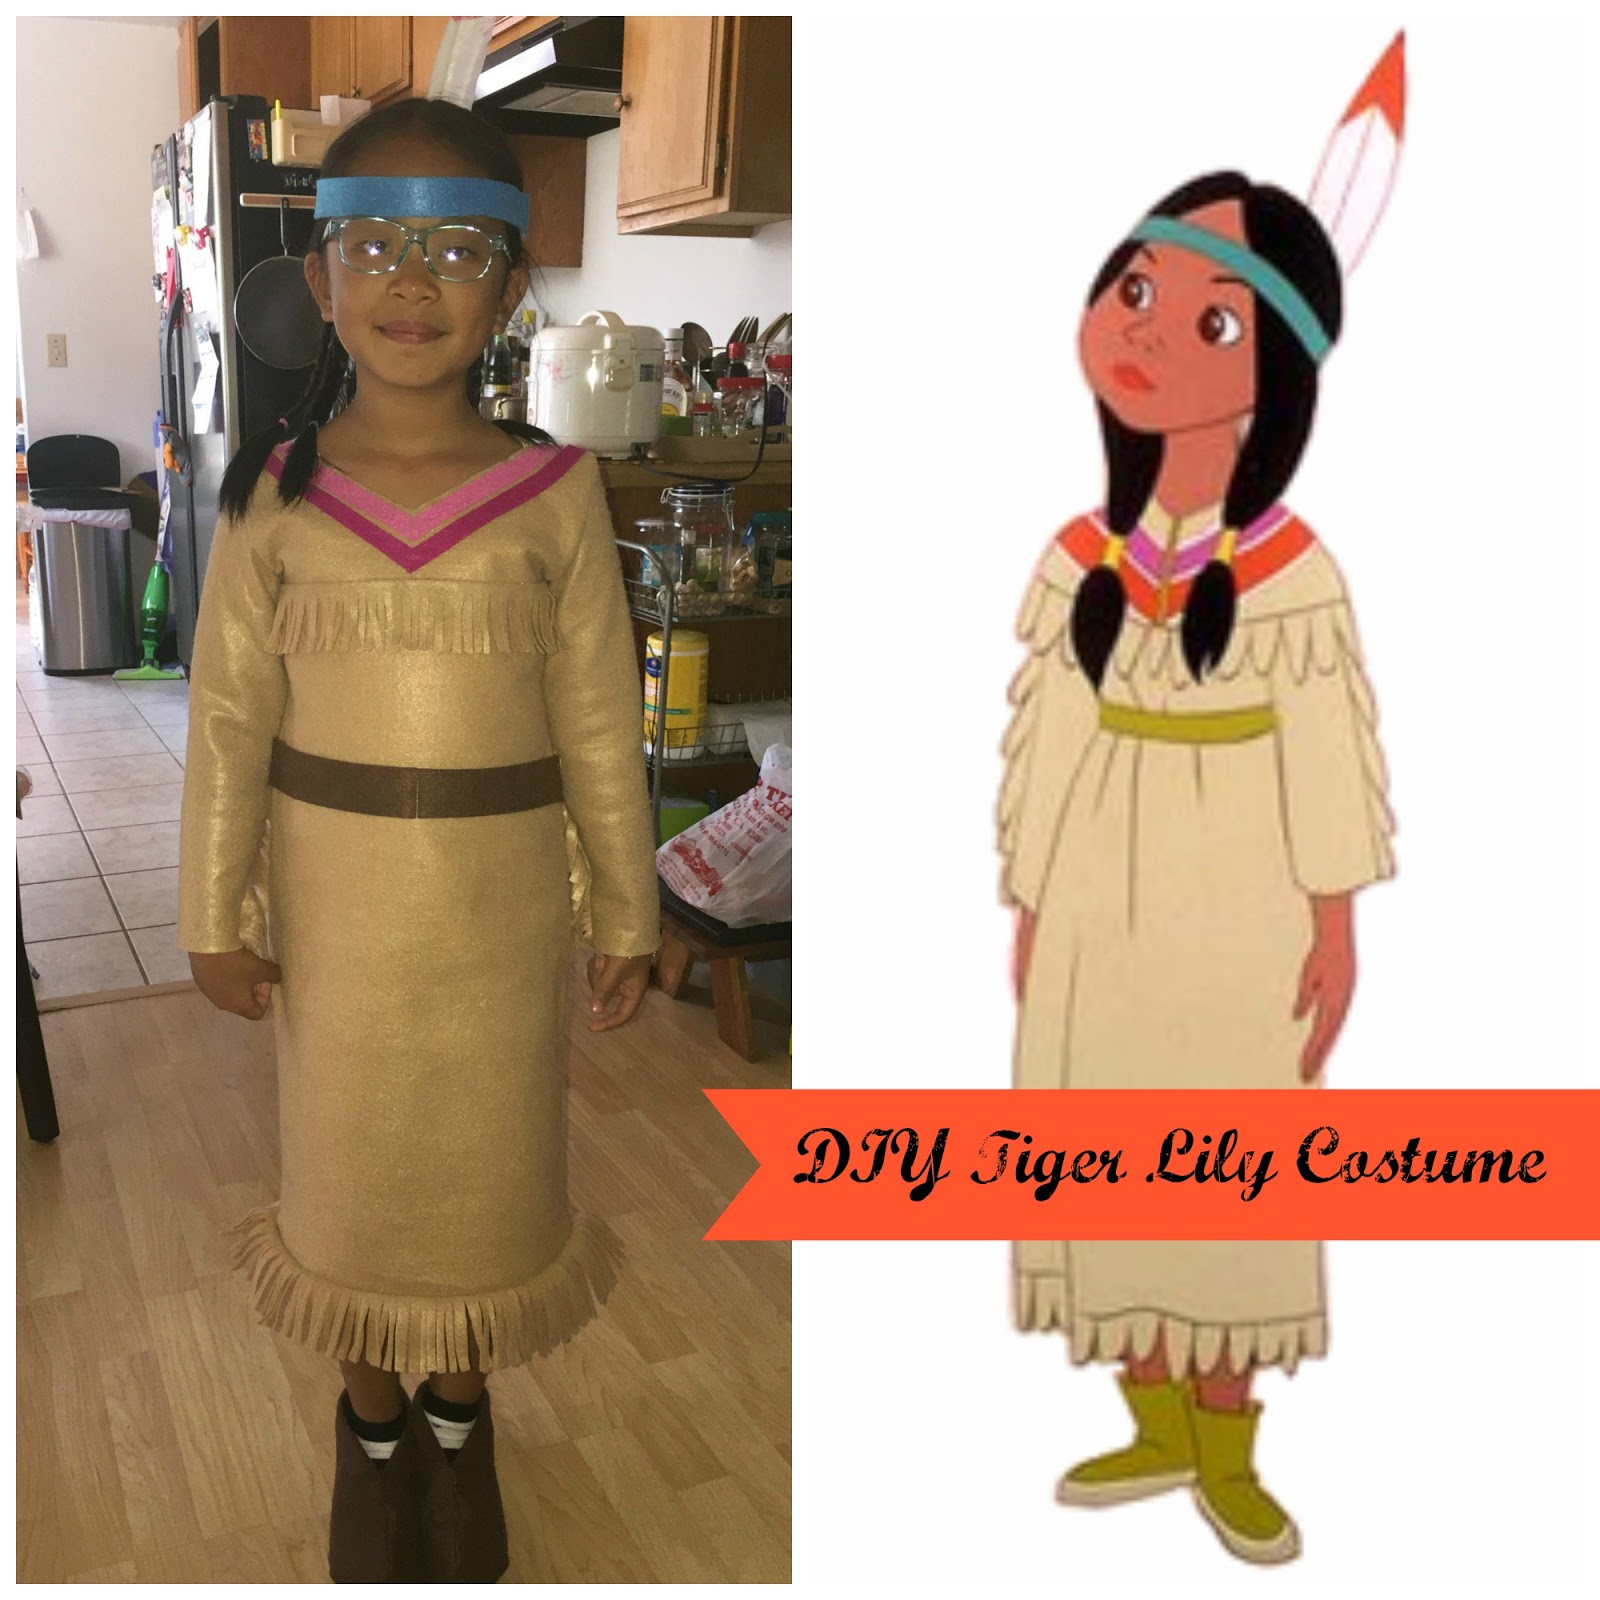 Adventures In Diy Diy Peter Pan Group Costumes Tiger Lily